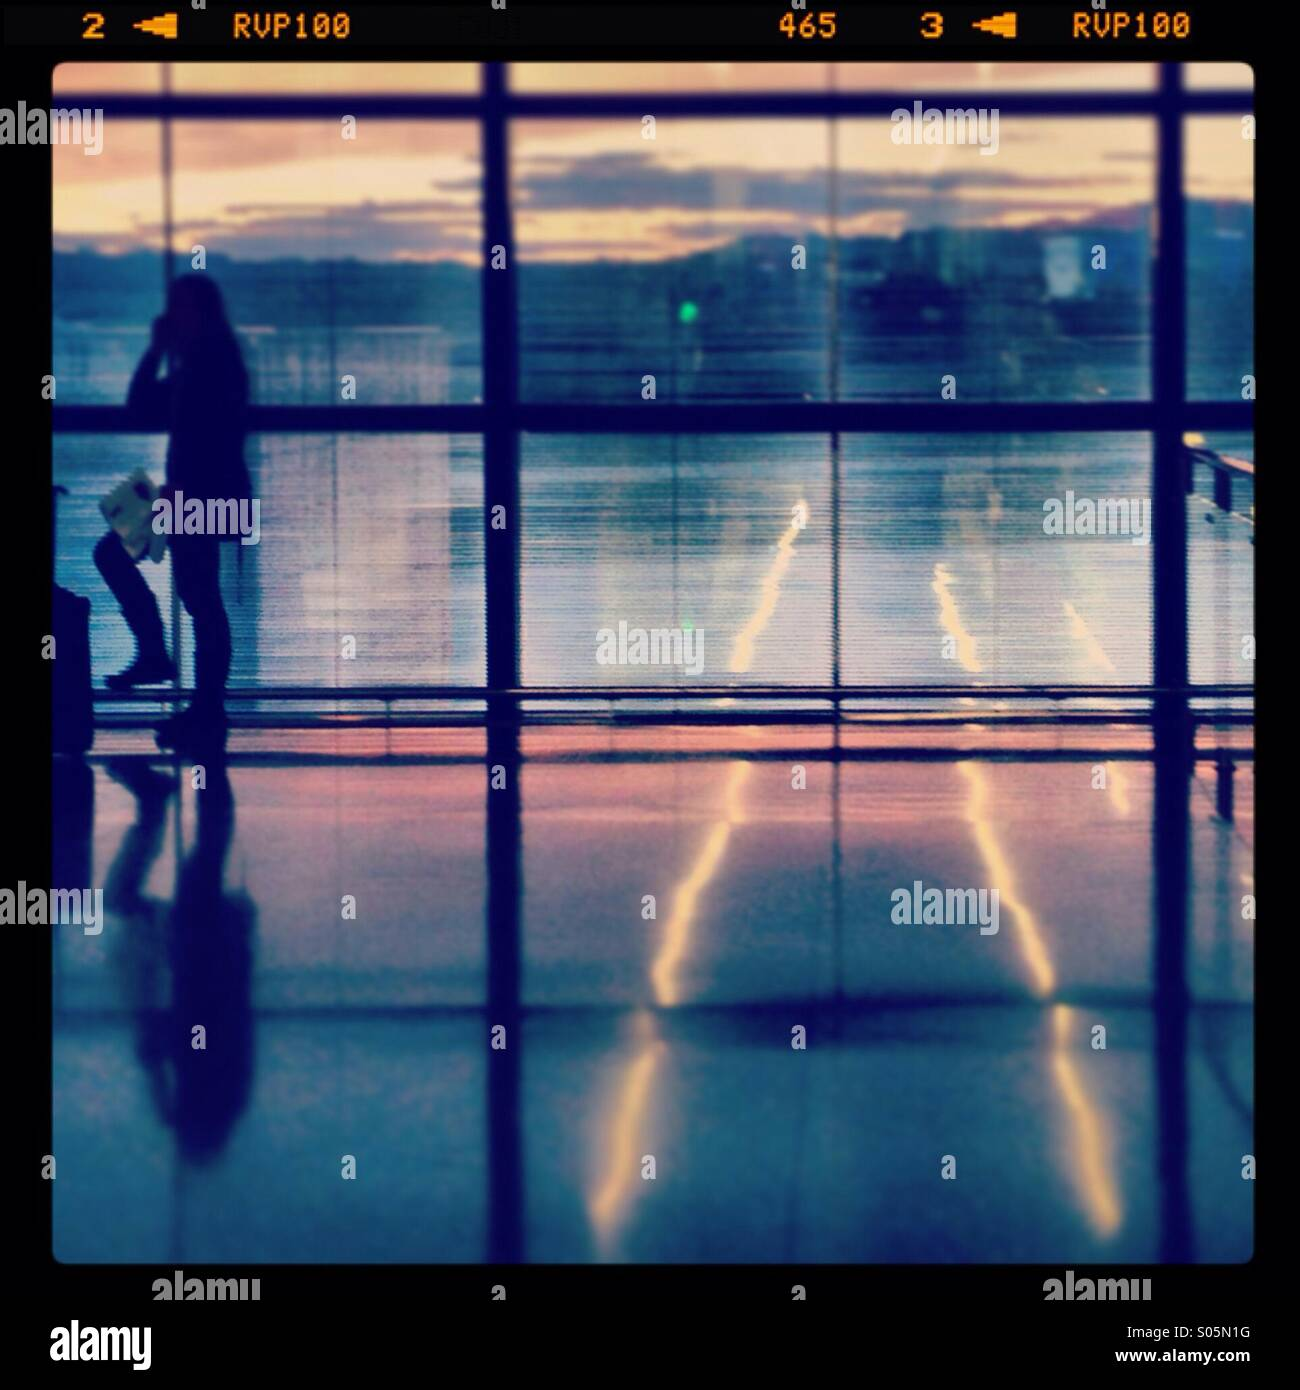 Zurich airport, Switzerland - Stock Image